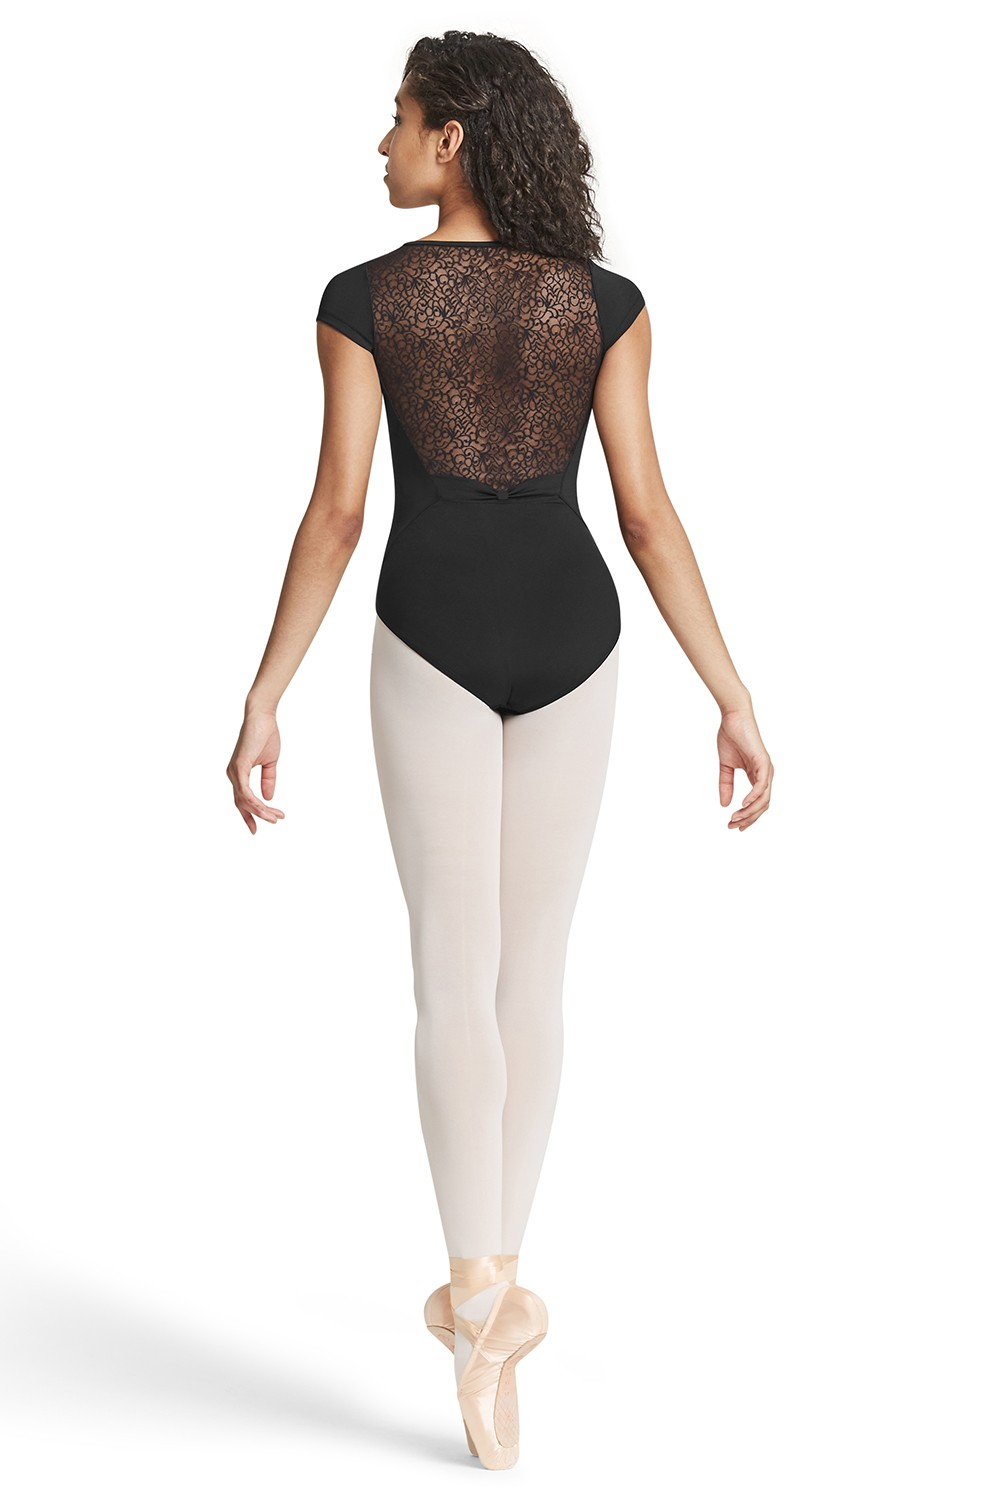 Bow Detail Cap Sleeve Leotard Women's Dance Leotards